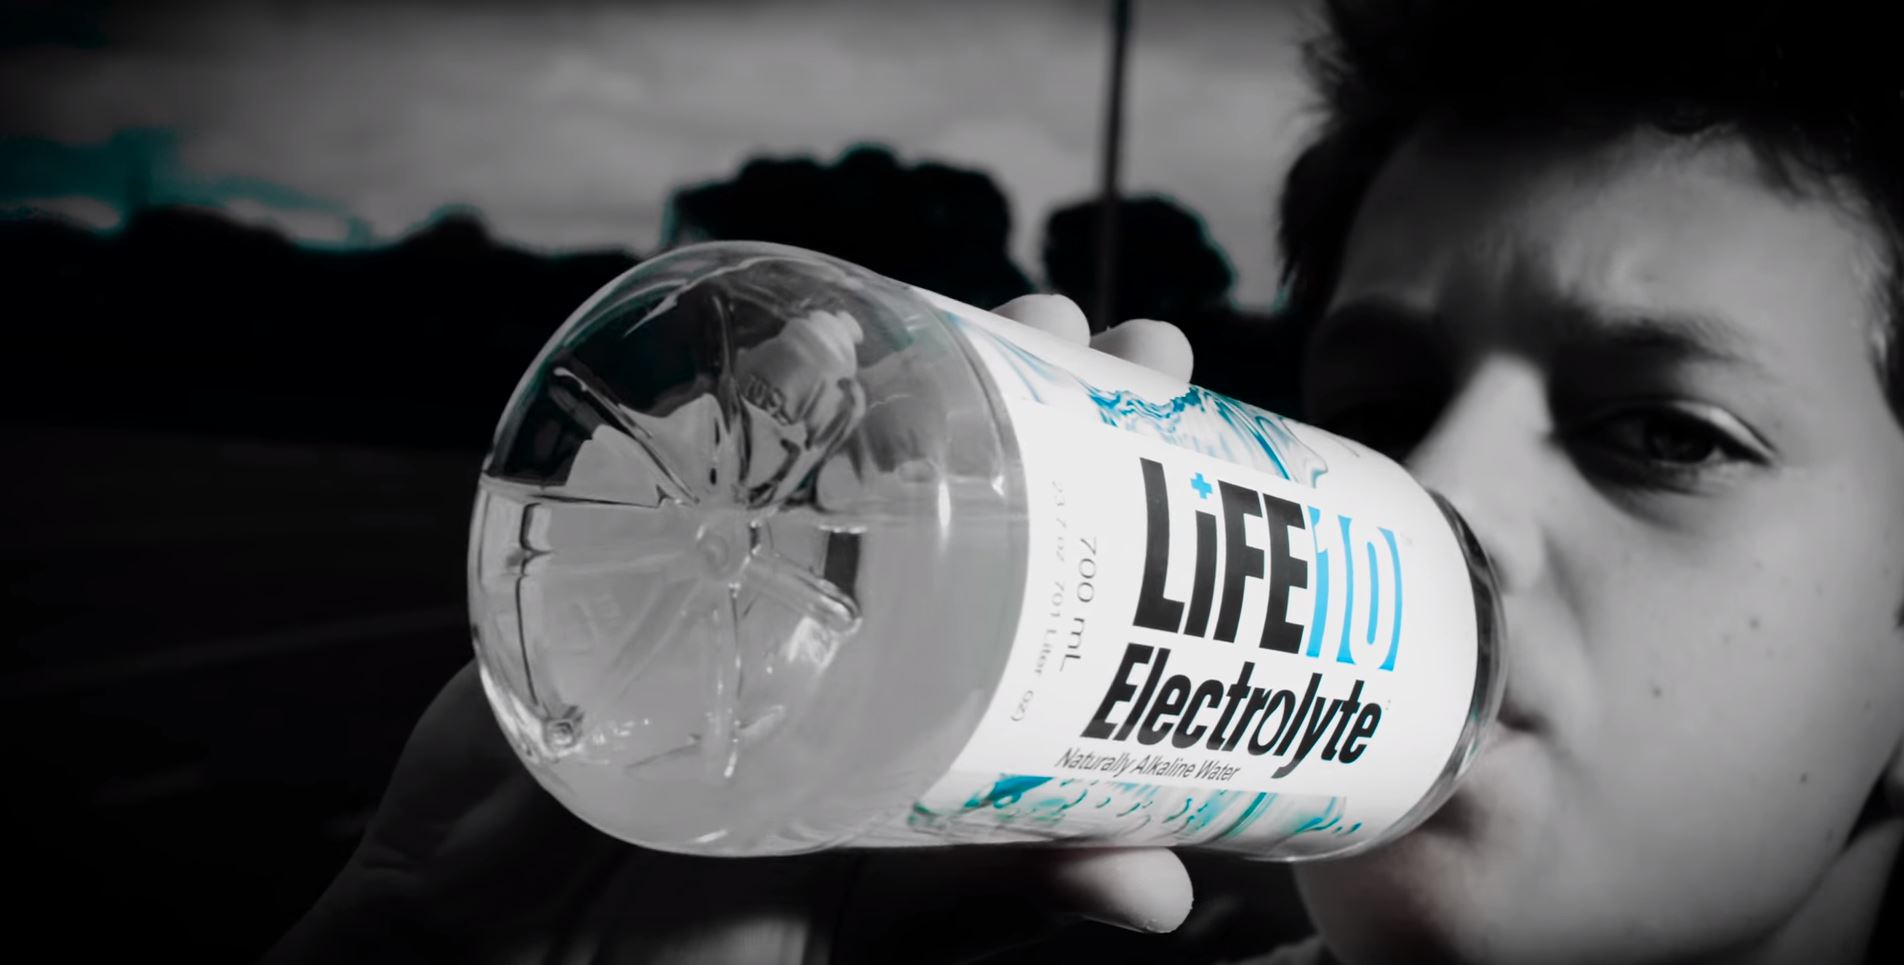 Life 10 Electrolyte Water